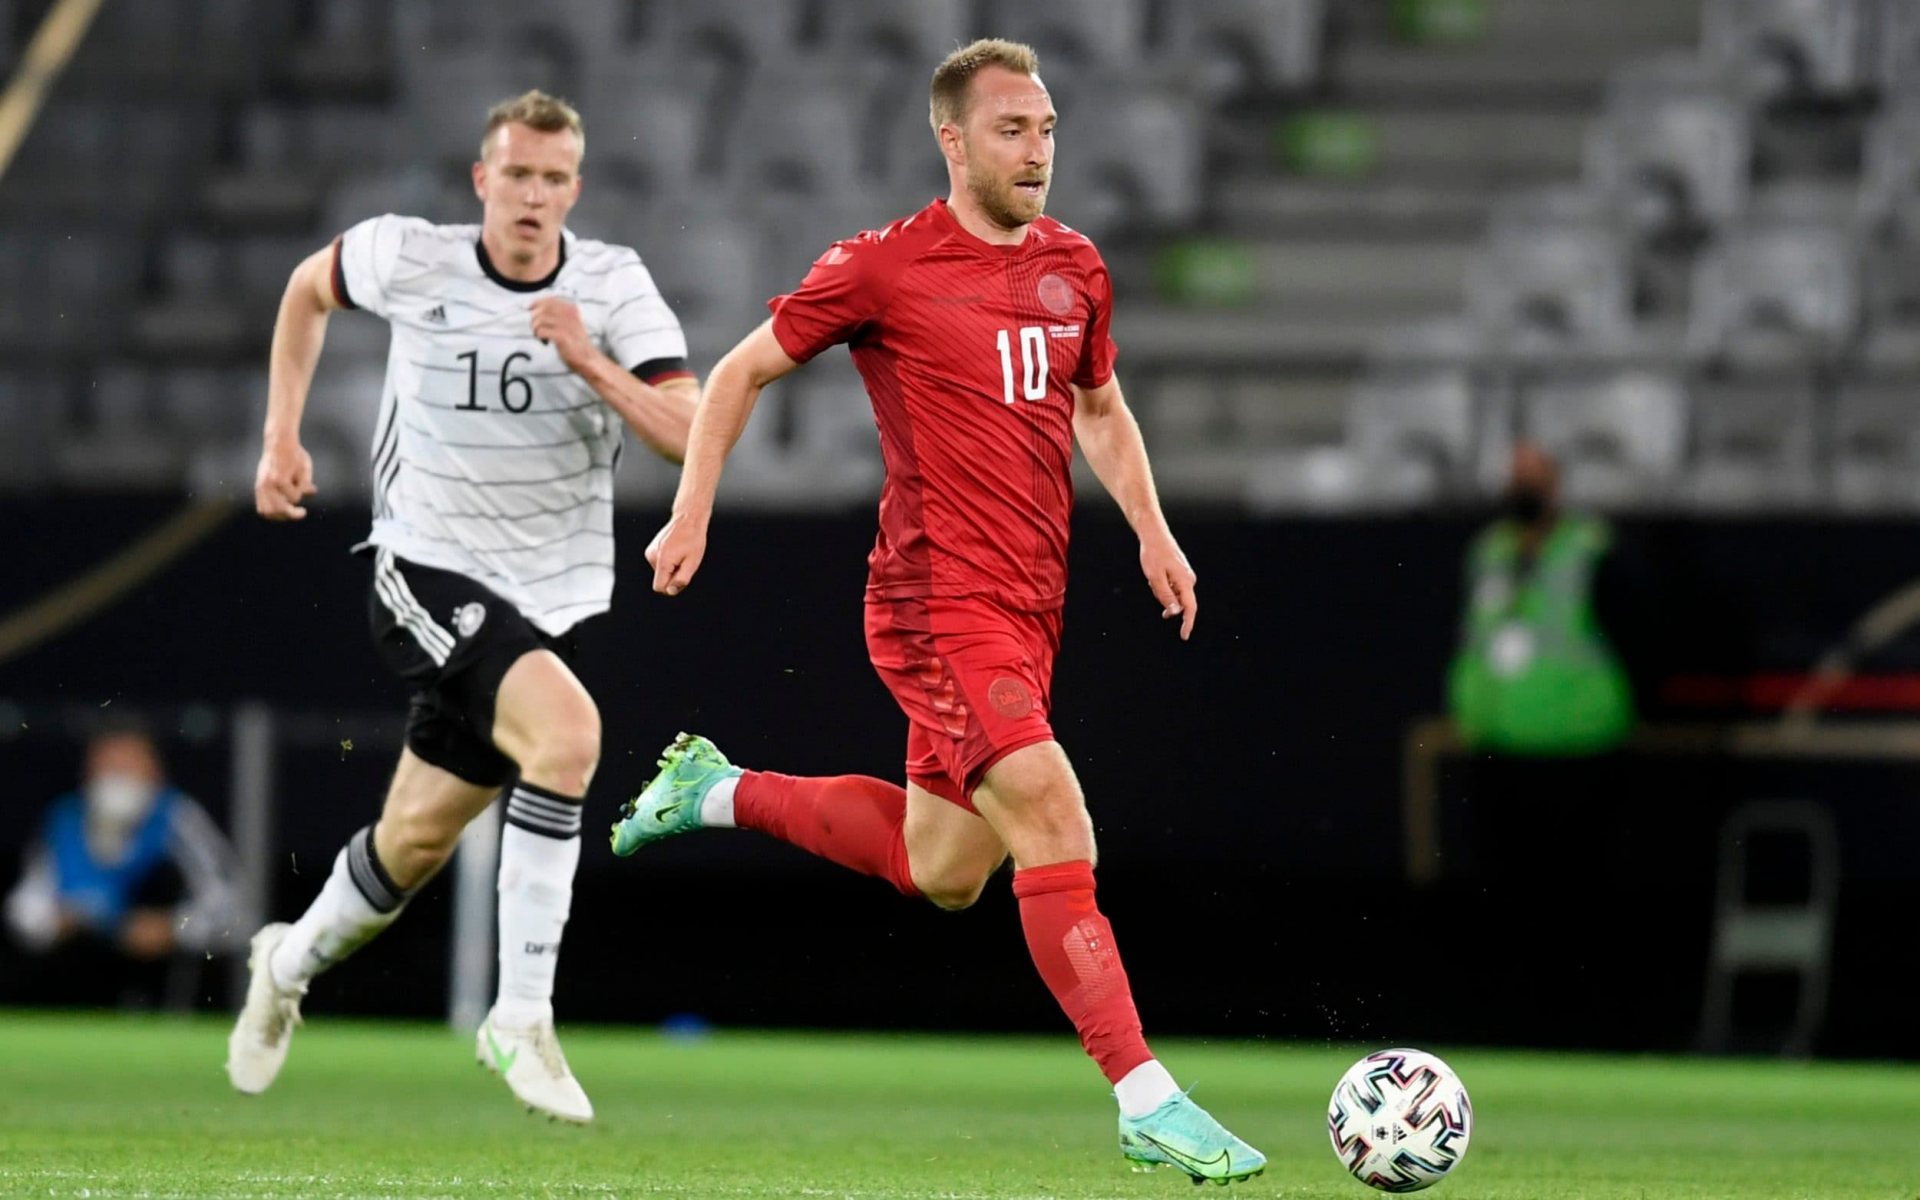 Denmark vs Finland Euro 2020: What for Free, Kick off time, TV channels, Live stream, Team news